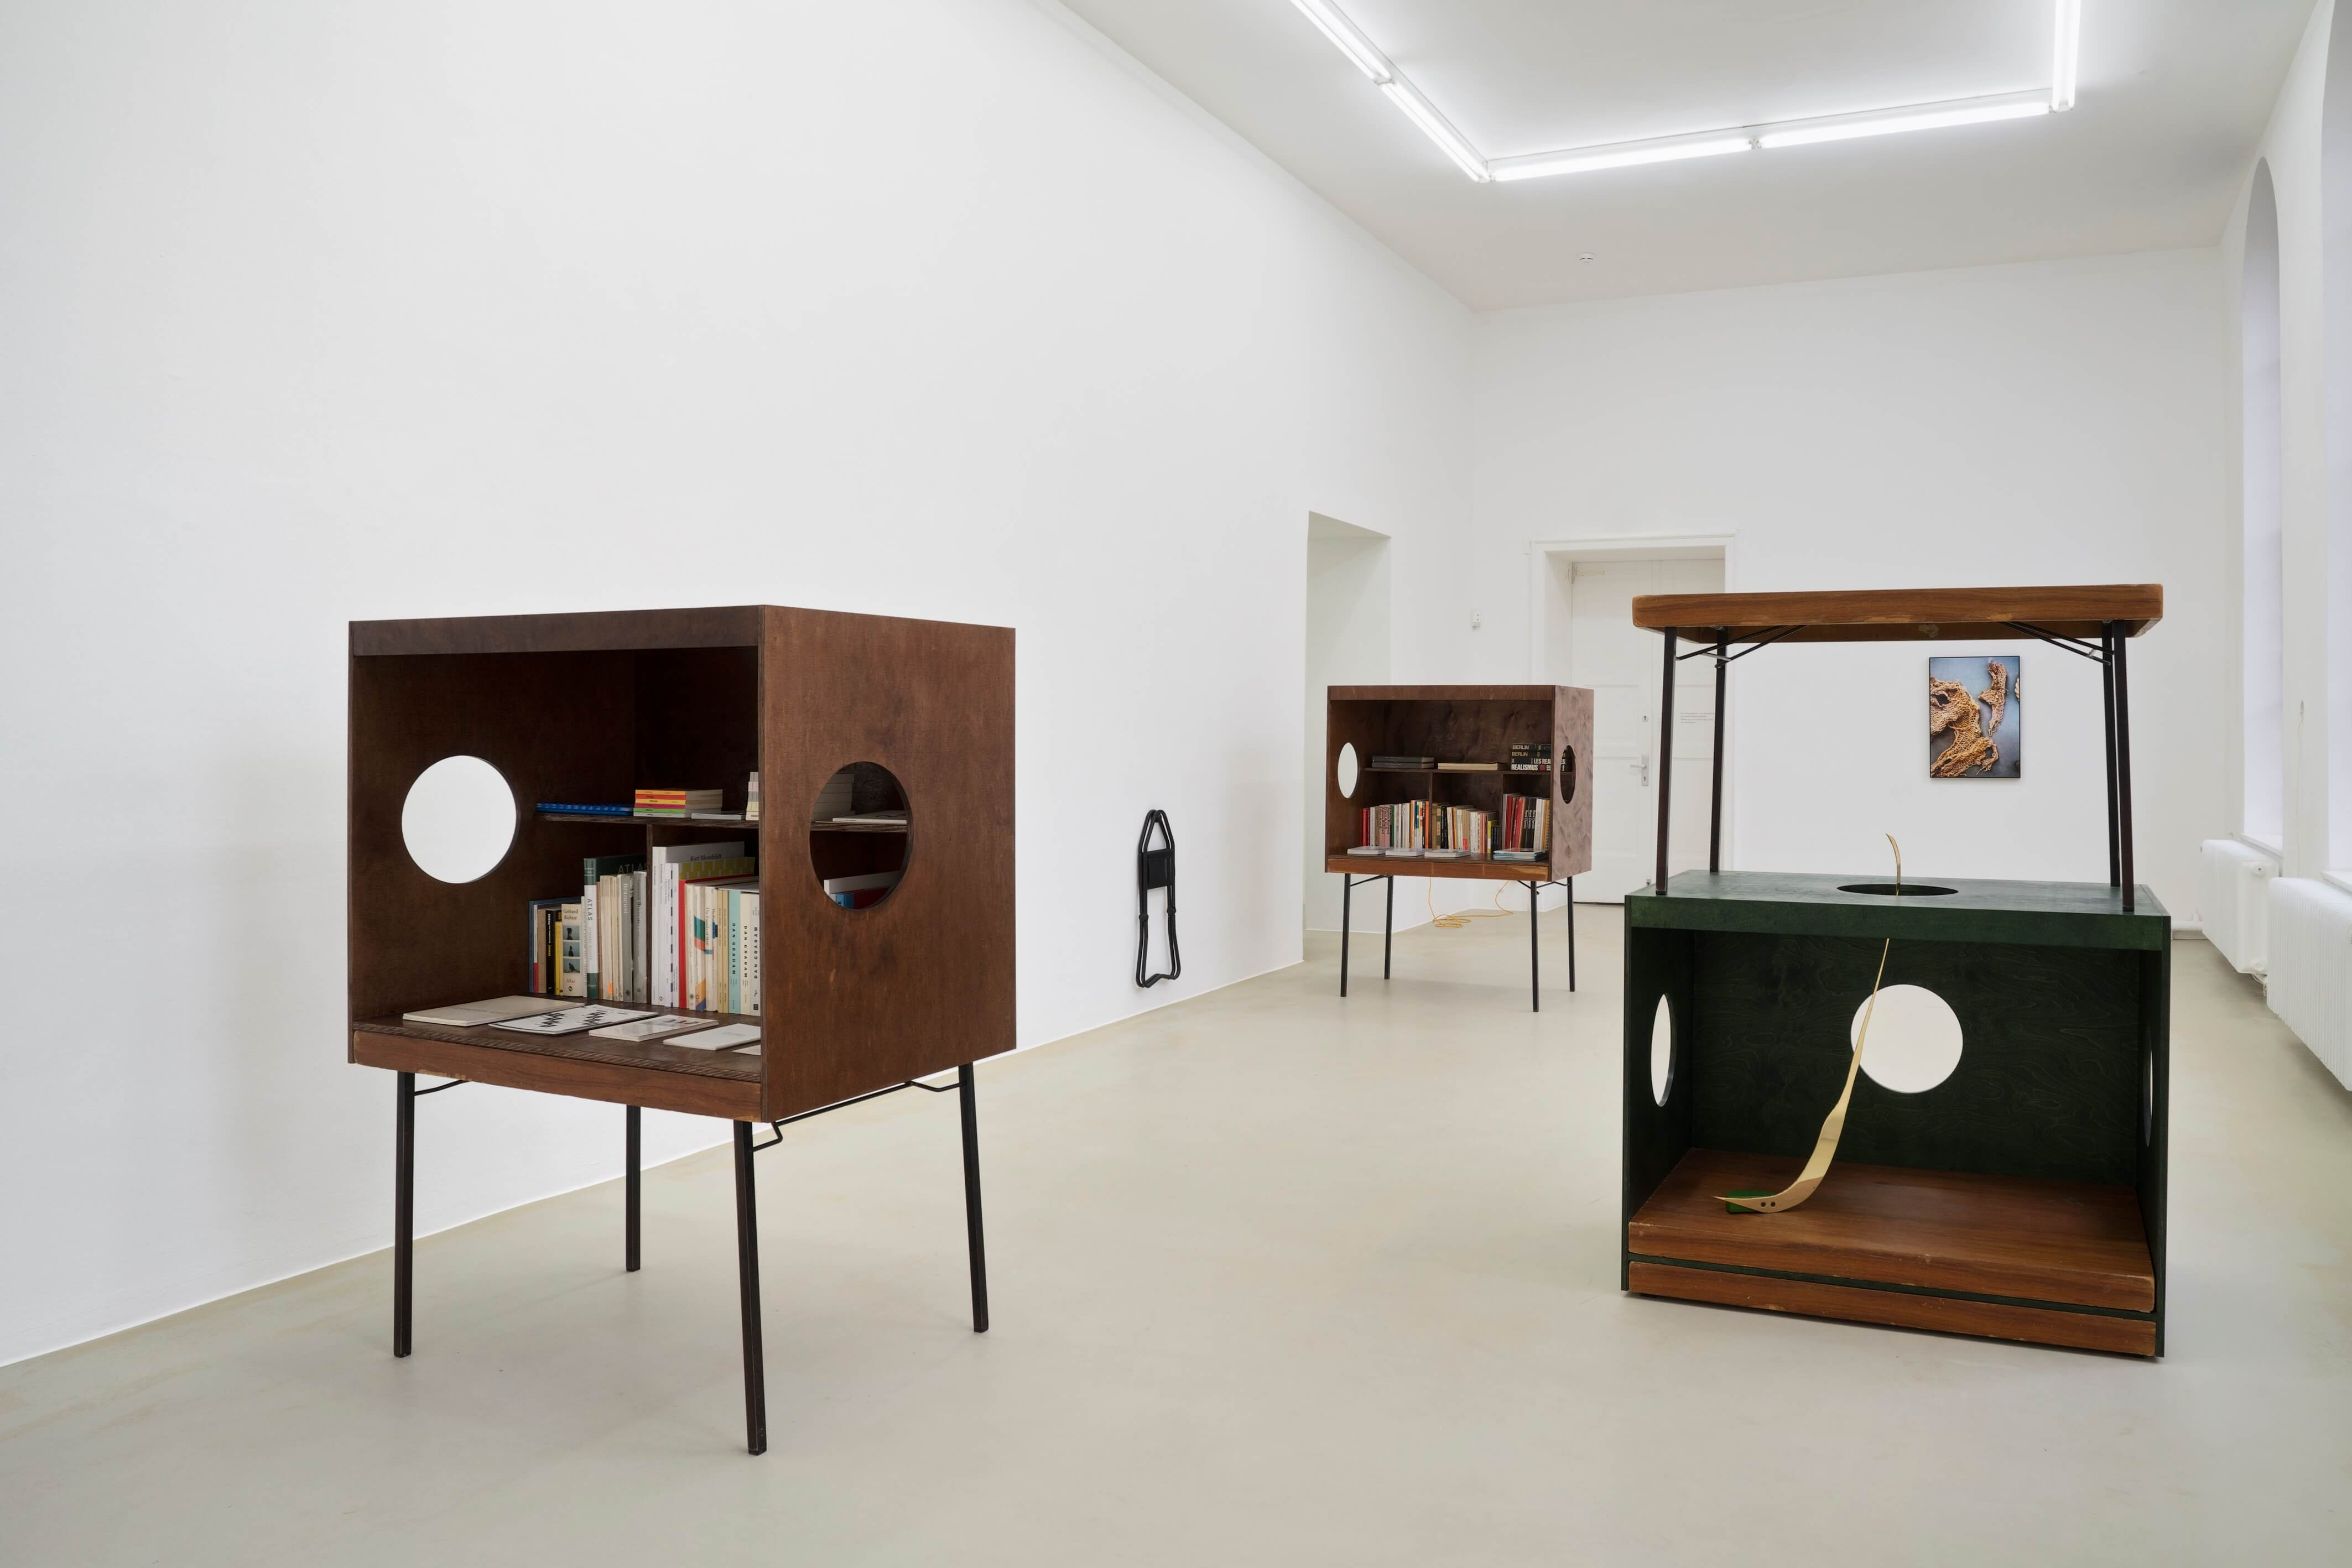 Installation view: Sache: Gallery of Material Culture, Kunstverein Hannover, Germany, 2019 |  | ProjecteSD